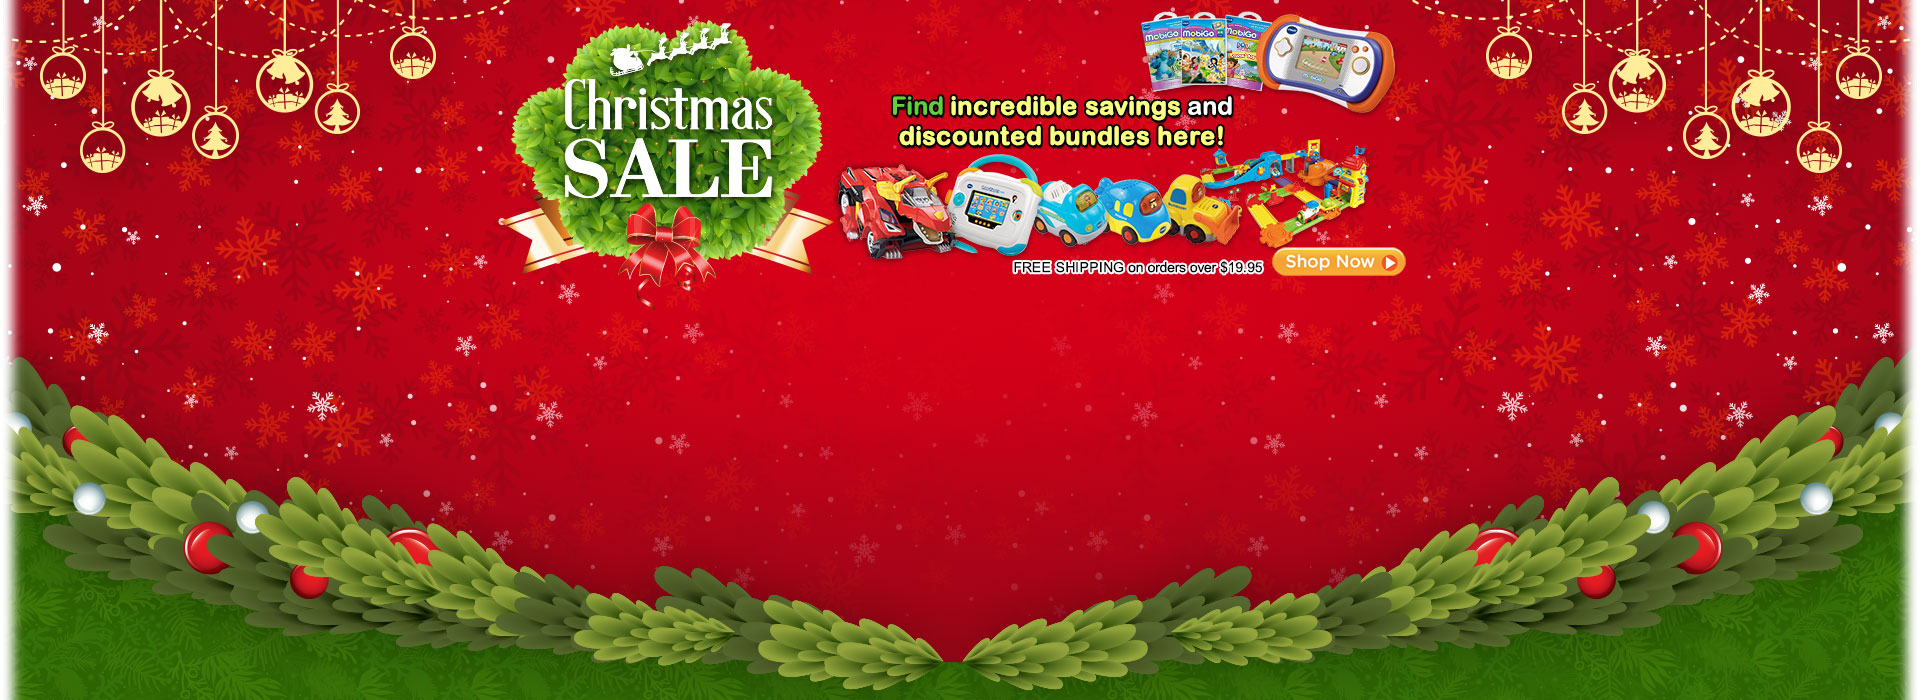 Christmas Sale - Find incredible savings and discounted bundles here!